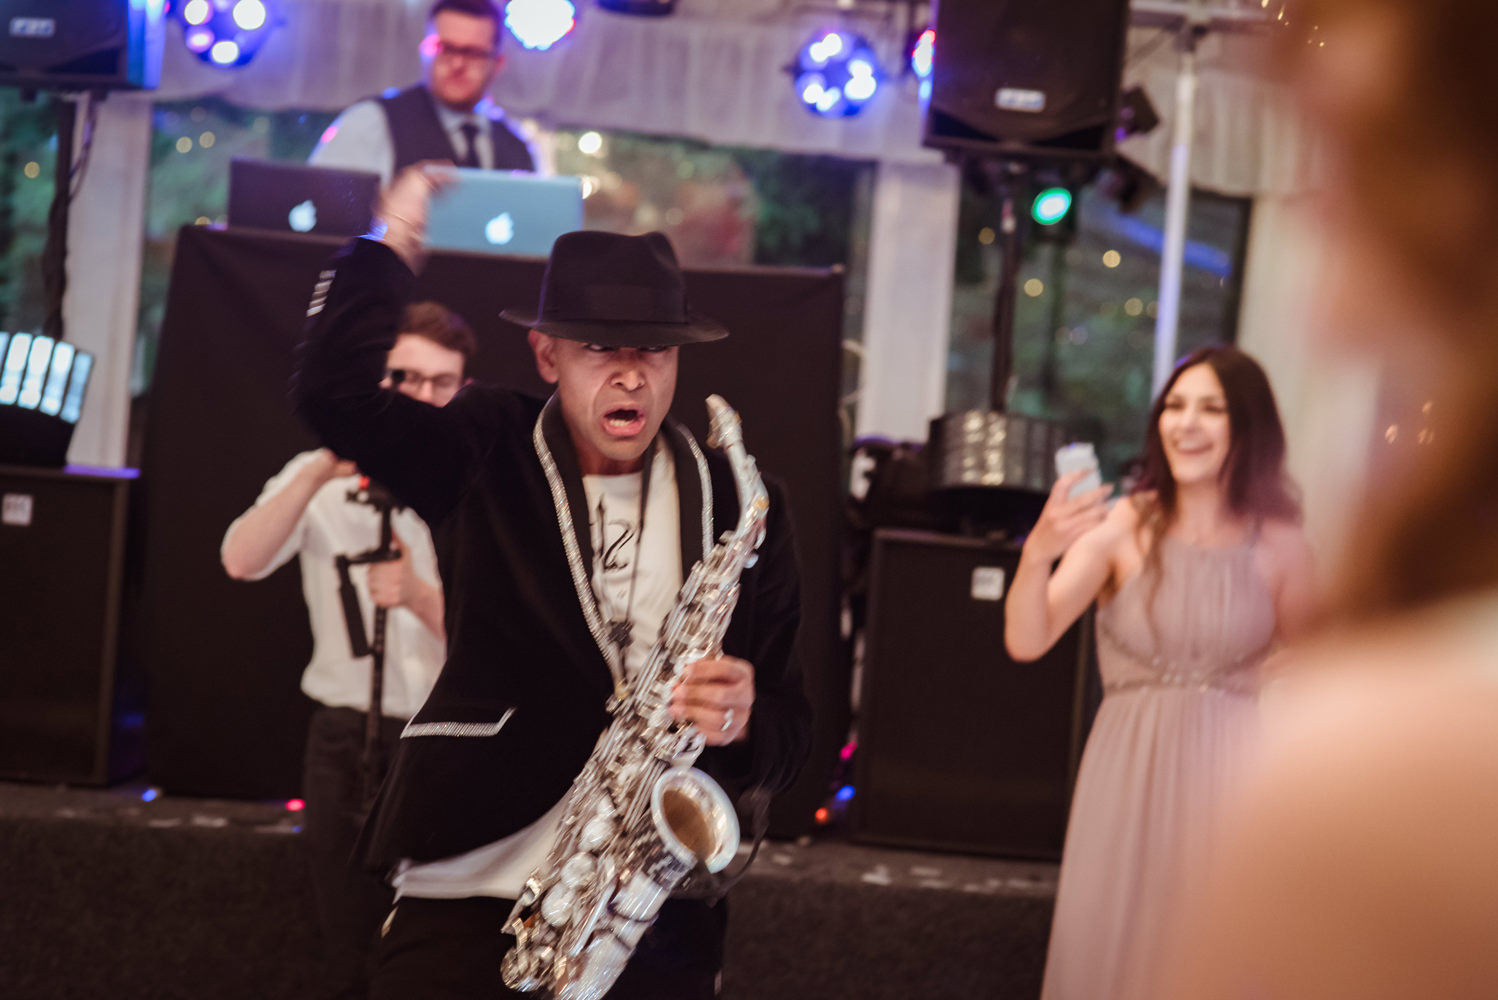 wedding-entertainment-ideas-scotland.jpg